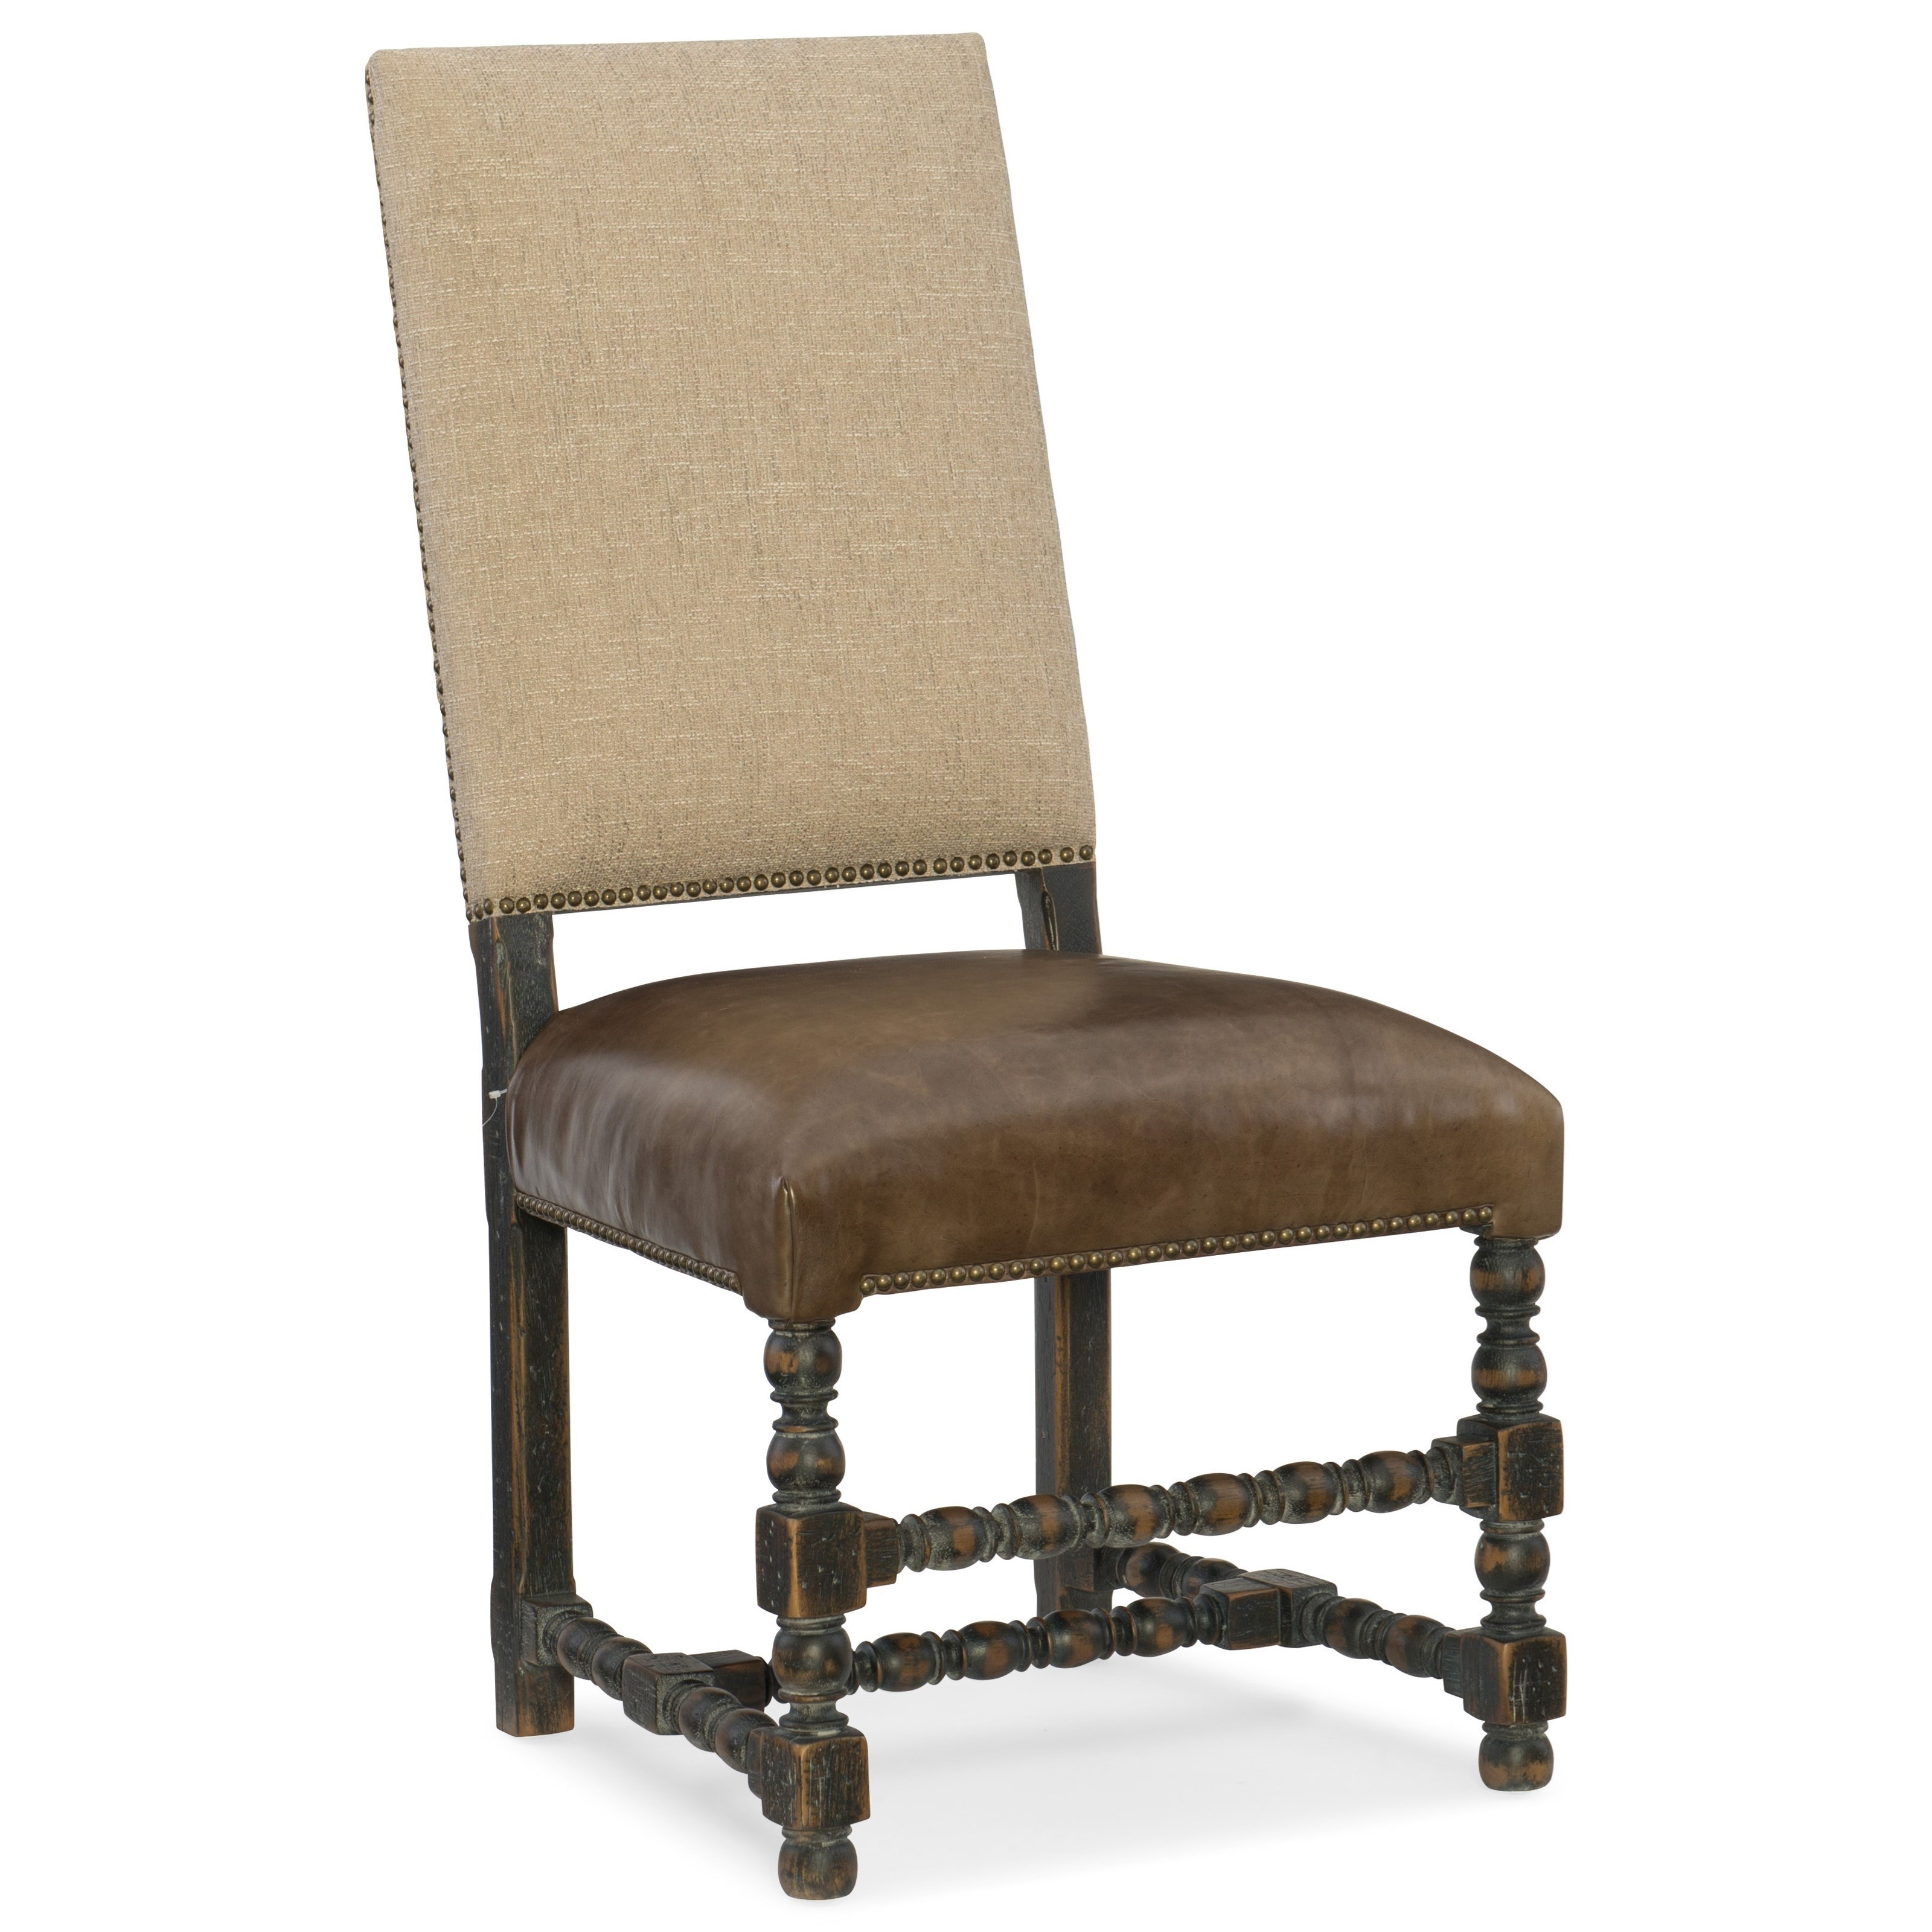 Hill Country Comfort Upholstered Side Chair by Hooker Furniture at Stoney Creek Furniture